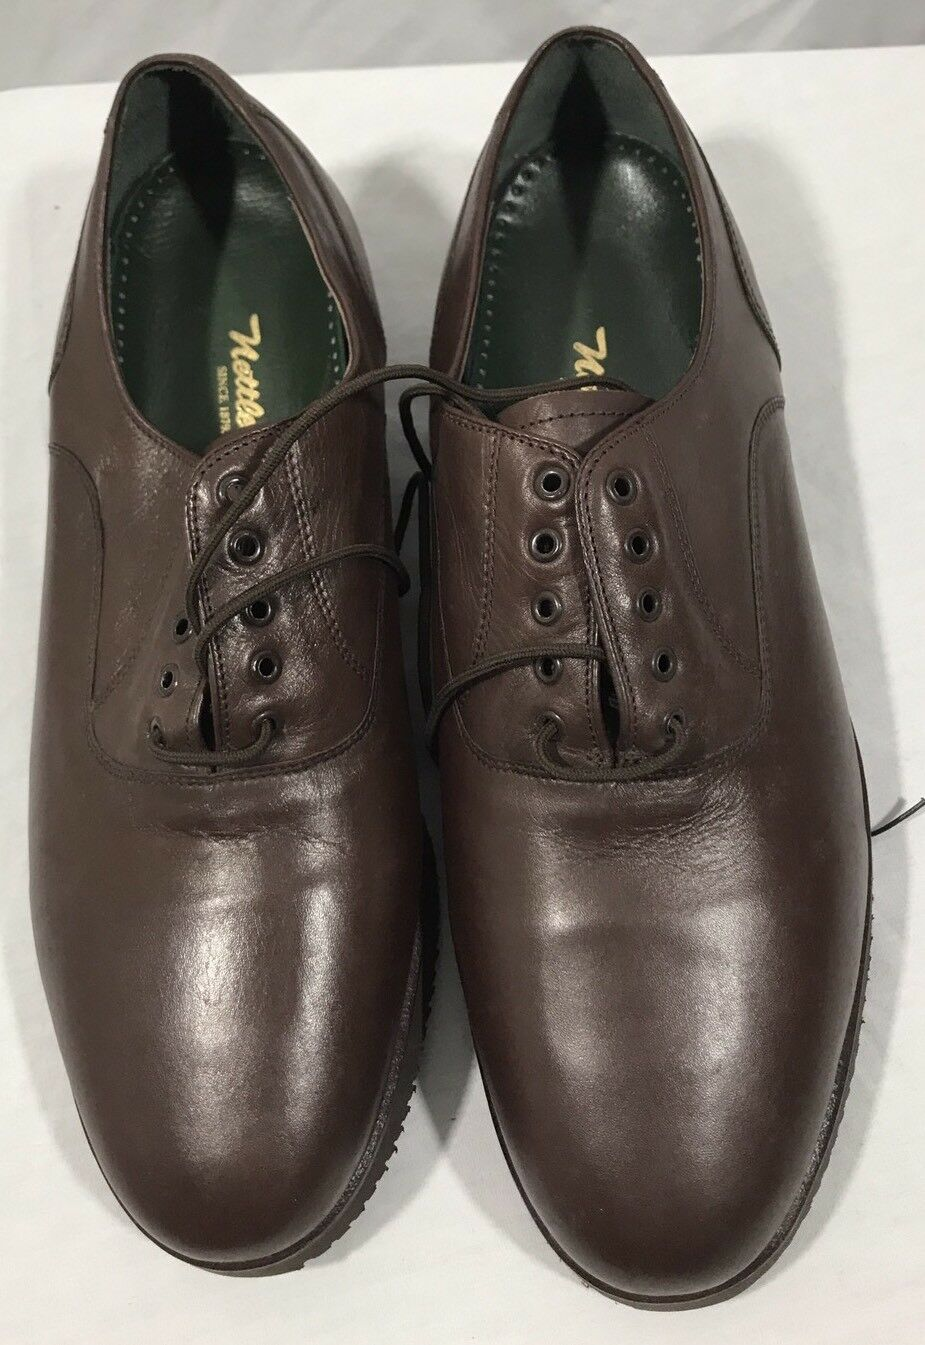 Nettleton Men's Brown Leather Lace Up Oxford shoes Size 10.5 D